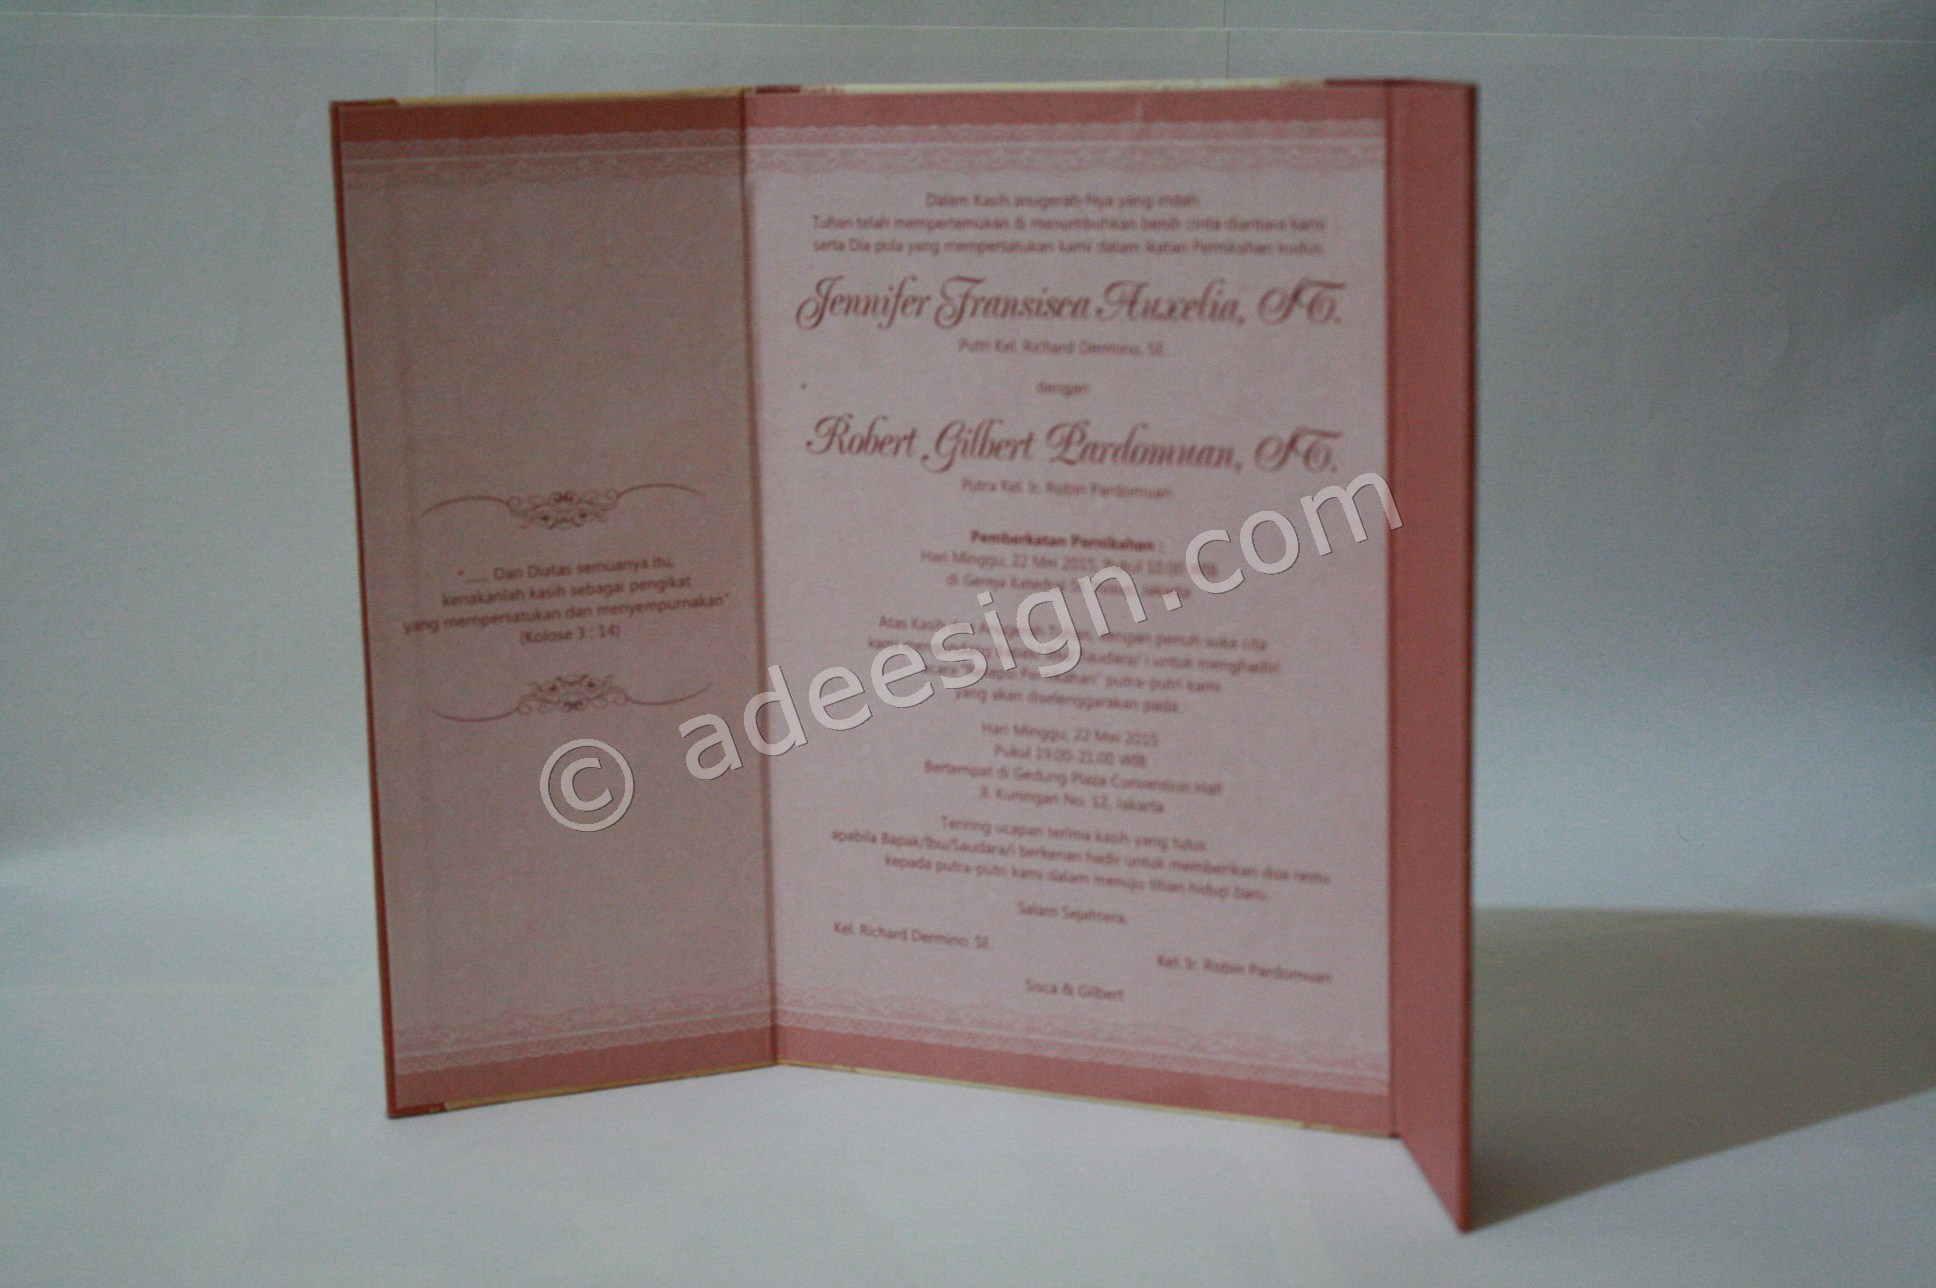 Undangan Pernikahan Hard Cover Sisca dan Gilbert 4 - Membuat Wedding Invitations Eksklusif di Jeruk